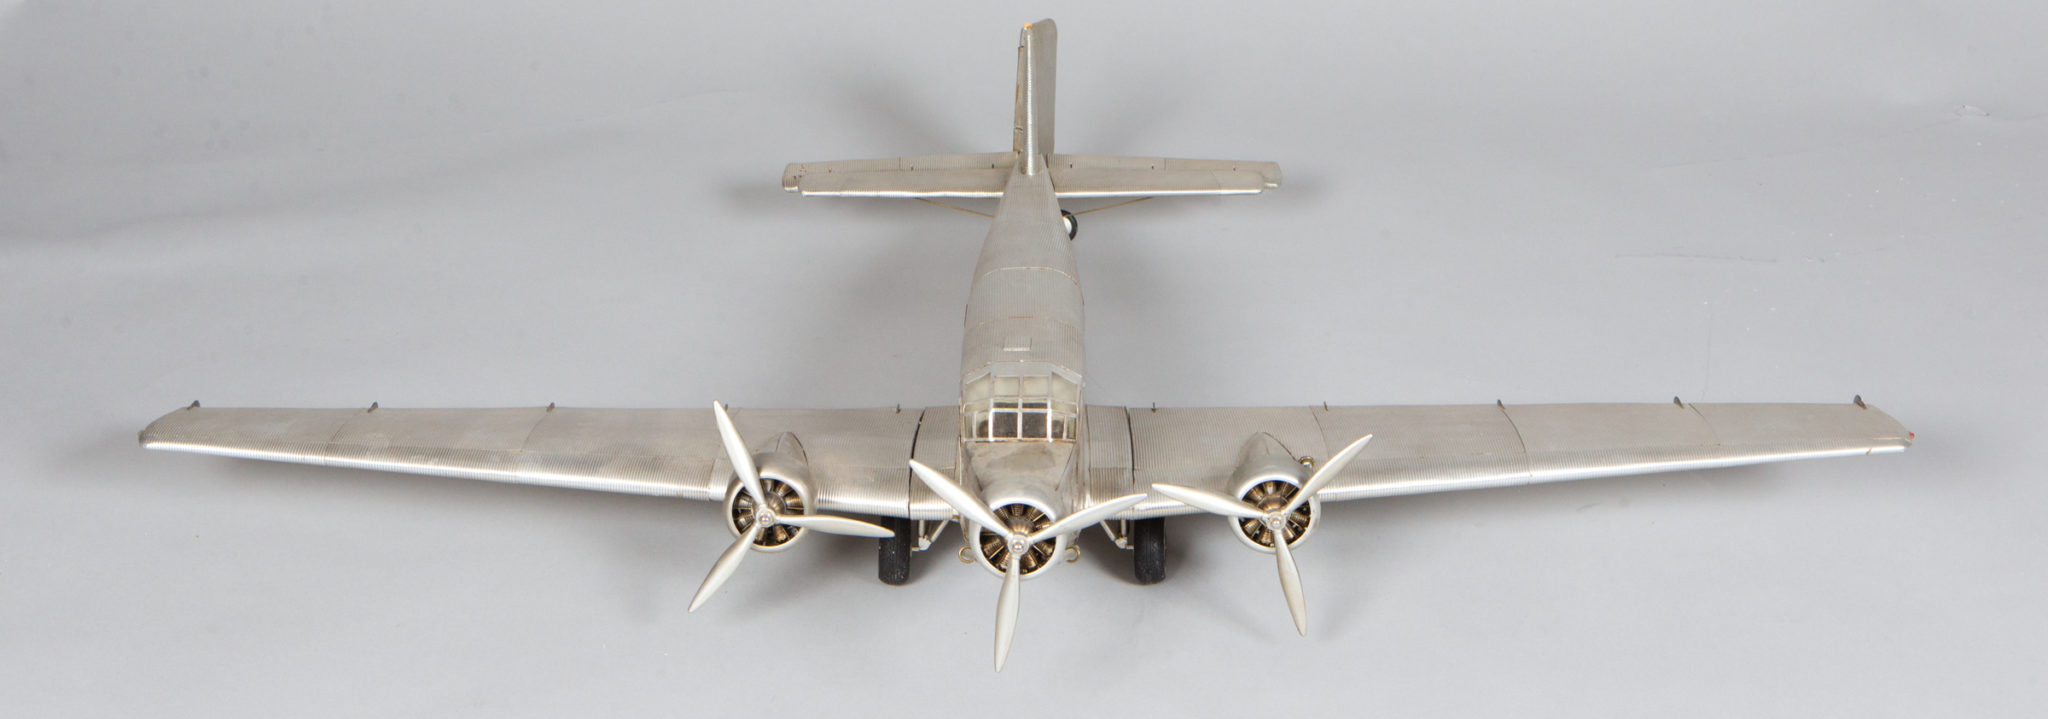 Fokker 1938 Trimotor Model Airplane